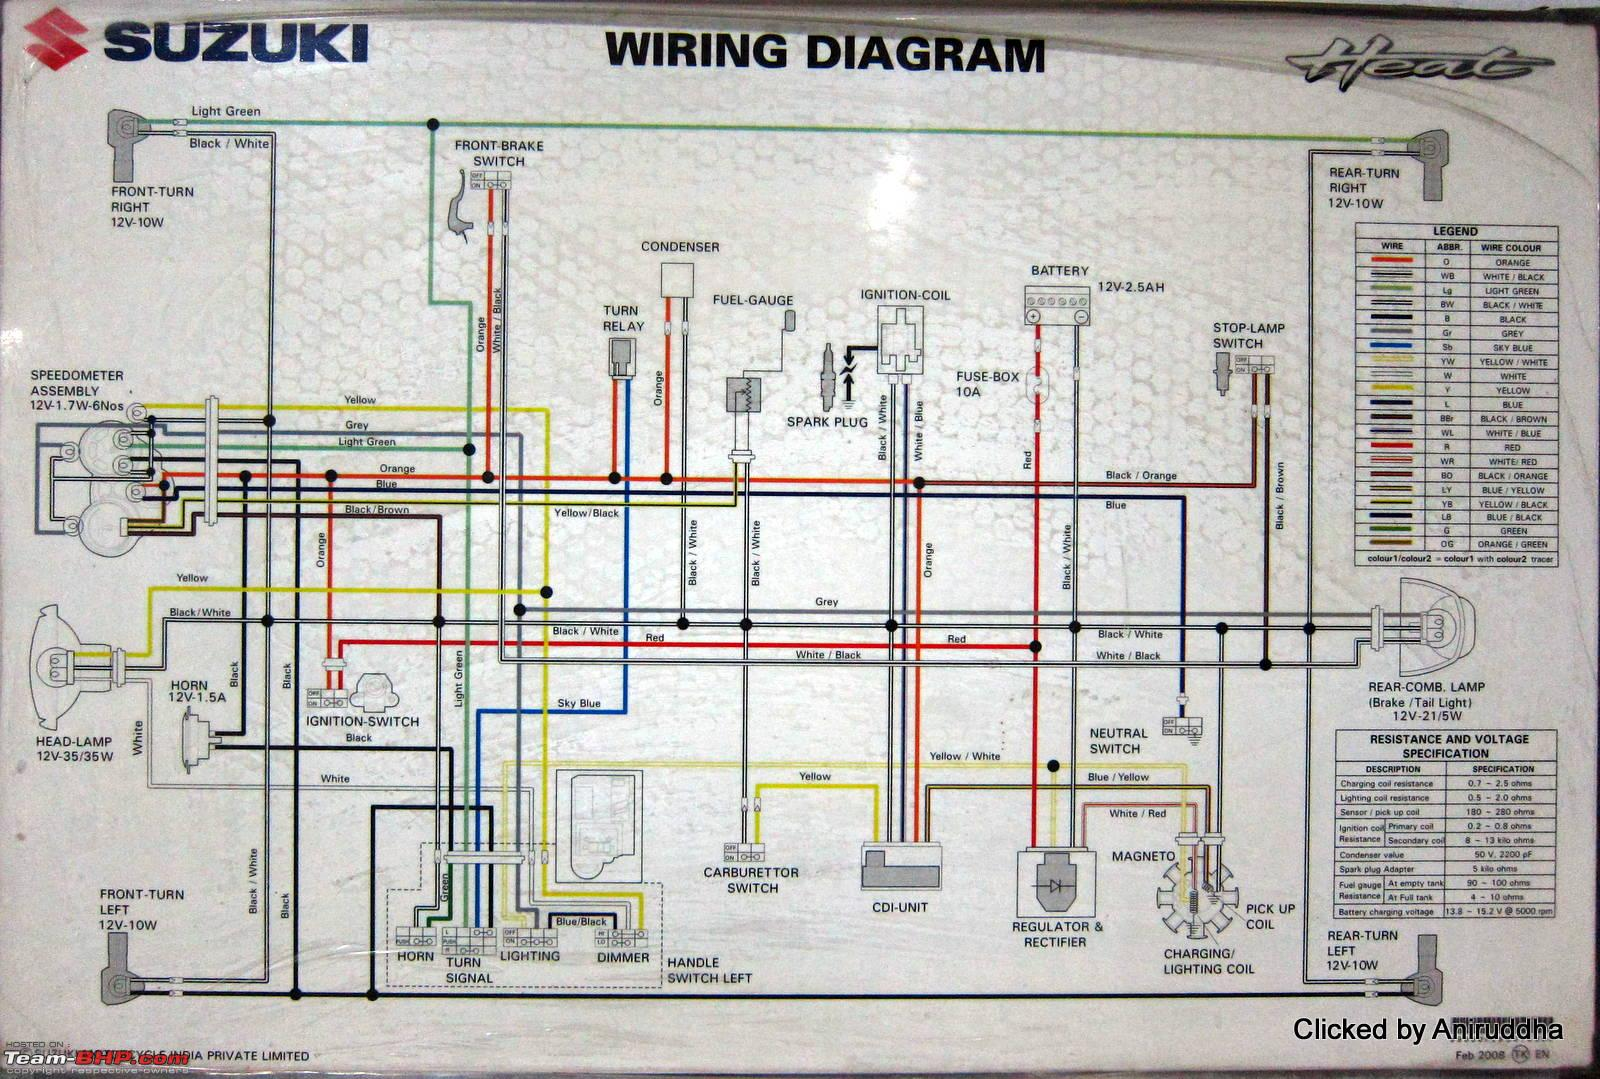 887405d1329132985 circuit diagrams indian motorcycles scooters img_0728?resize\\=1600%2C1079 100 [ zx9r 2002 service manual ] user manual and guide download wiring diagram for victory motorcycles at bakdesigns.co